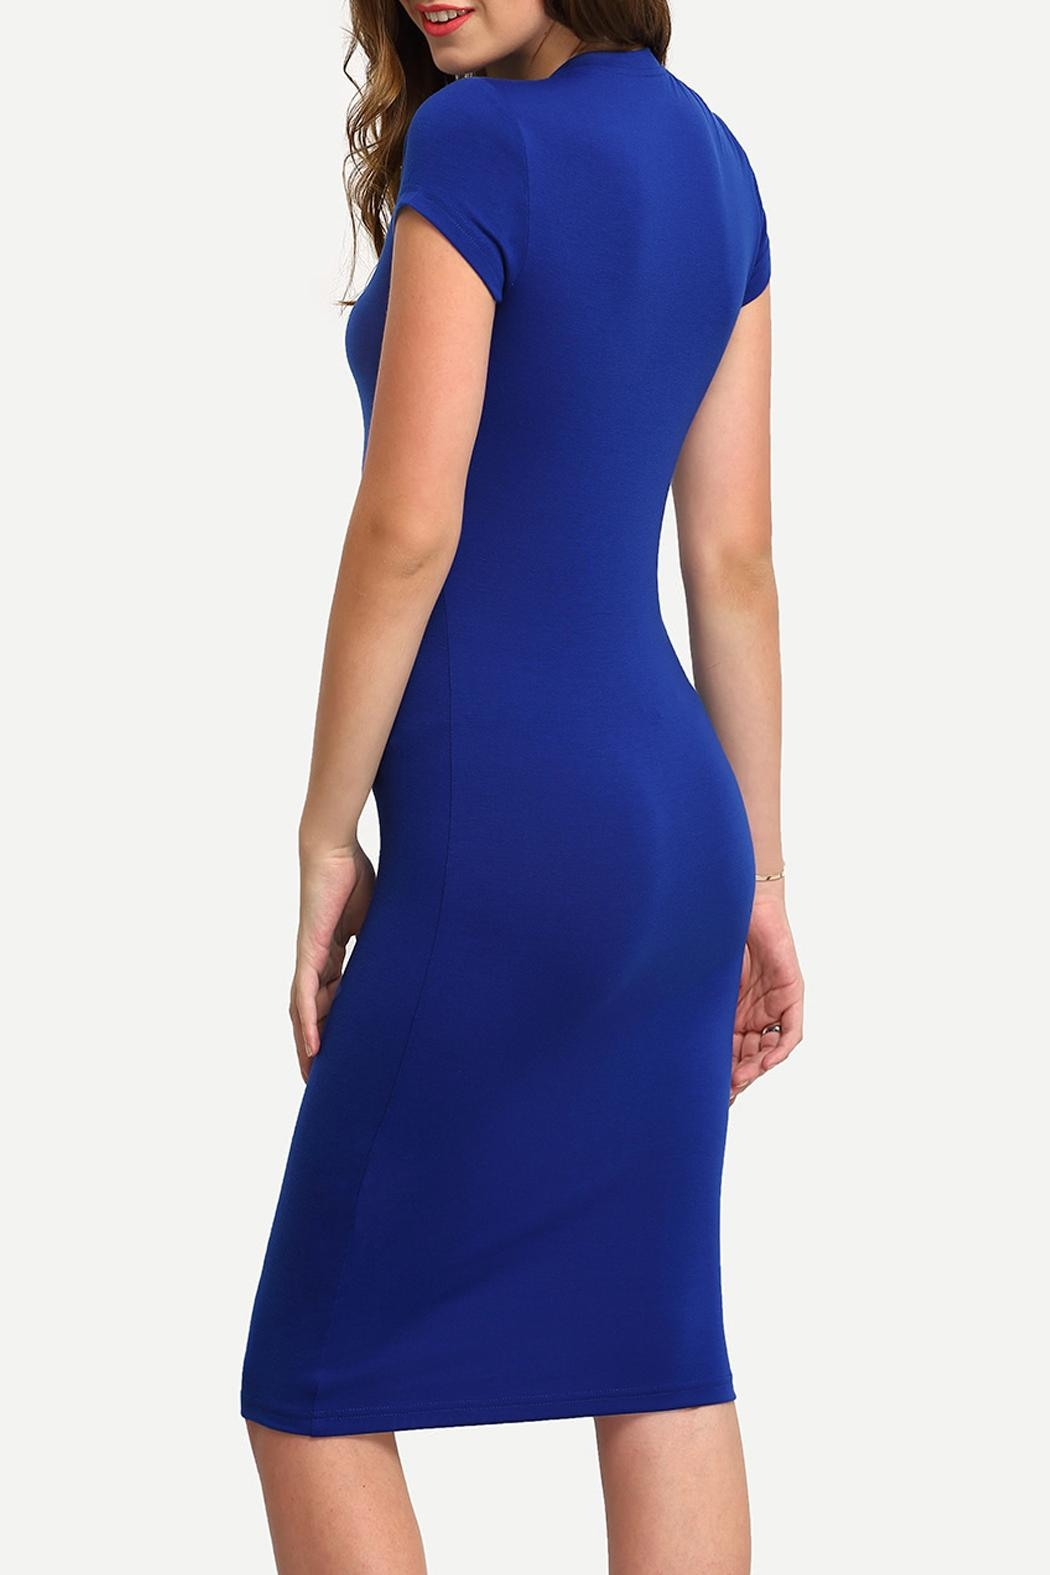 House of Atelier Blue Bodycon Dress - Front Full Image